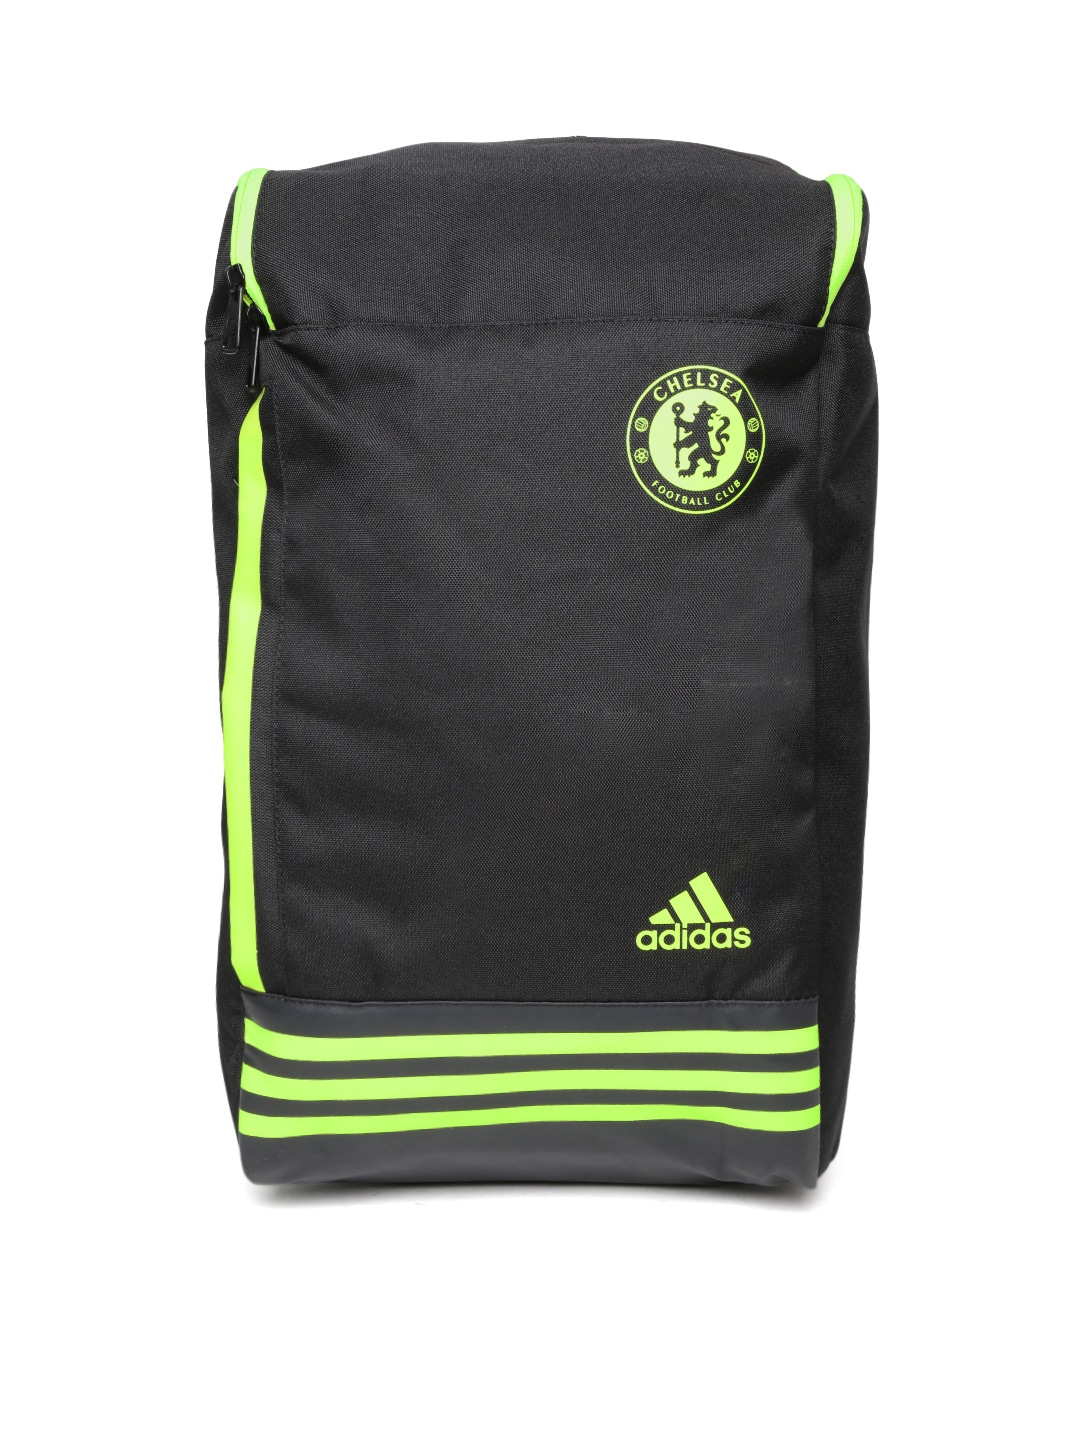 b2f4ae706f Adidas ax6627 Unisex Black Chelsea Fc Backpack - Best Price in ...